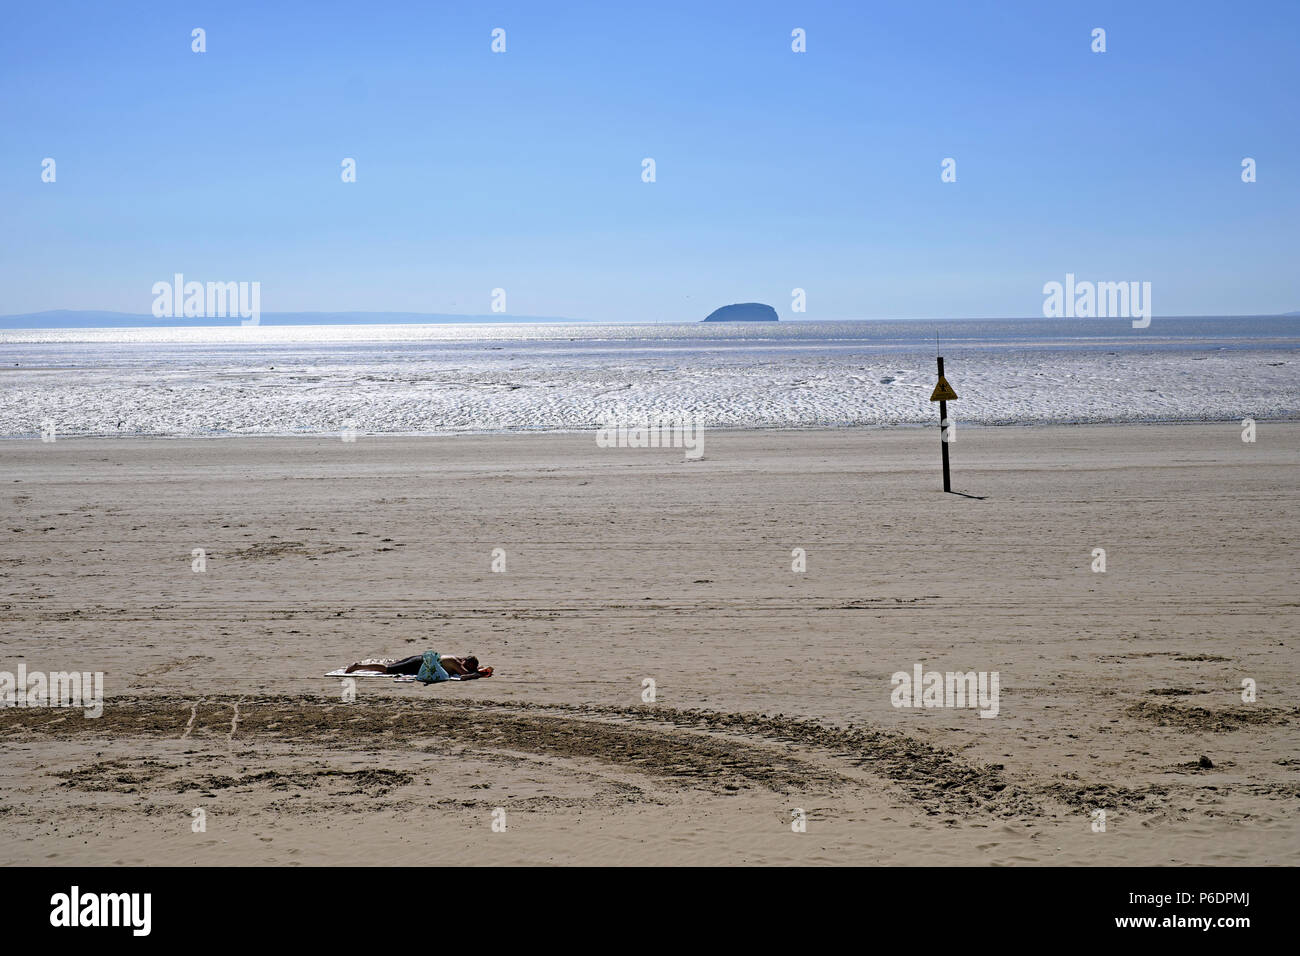 Weston-super-Mare, UK. 29th June, 2018. UK weather: as the heatwave continues and the temperature exceeds 80º F, a sunbather relaxes on the beach. Keith Ramsey/Alamy Live News - Stock Image